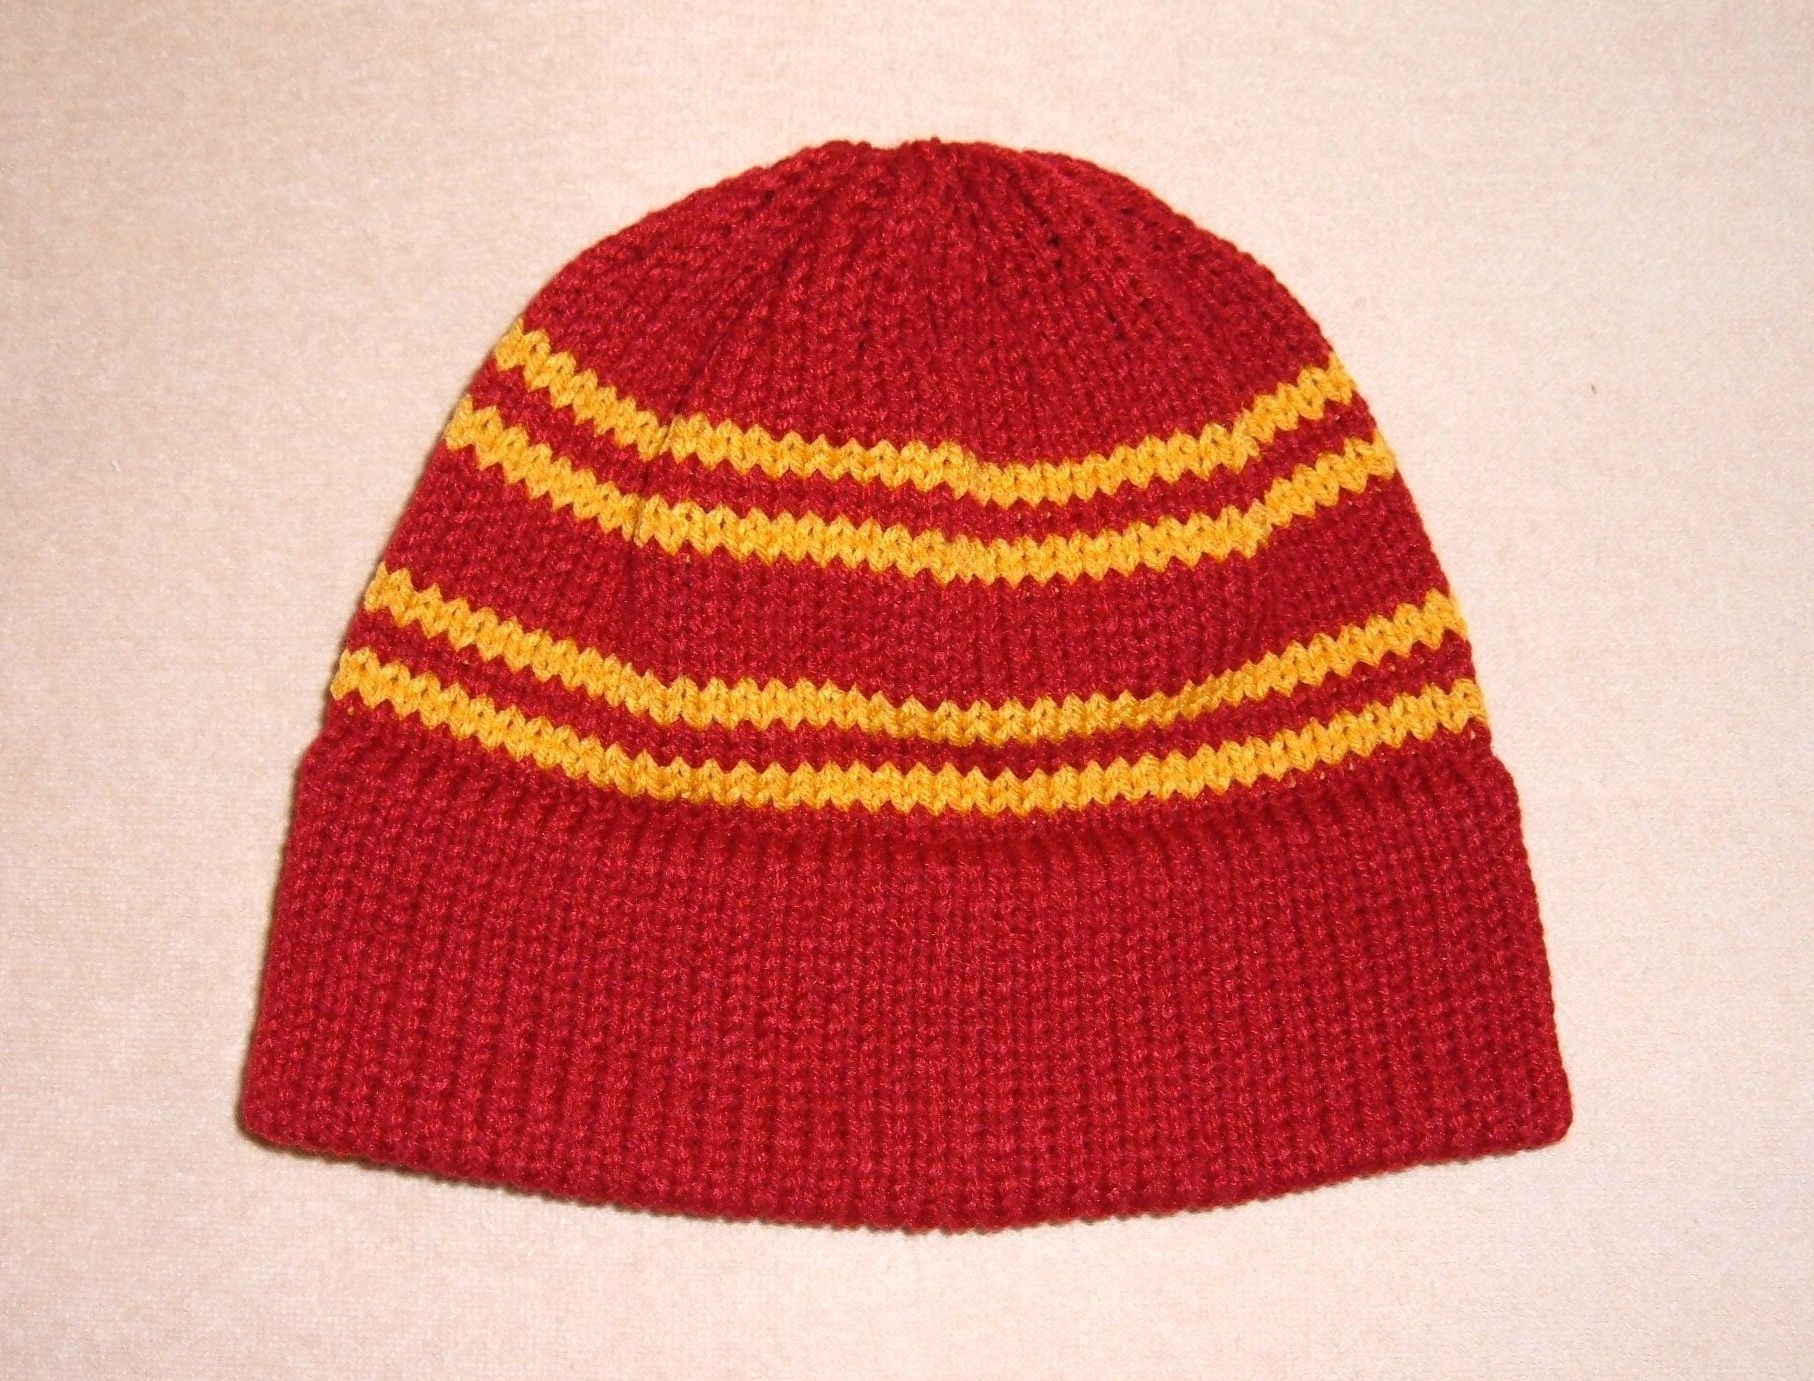 Easy machine knit hat machine knitting pinterest knit hats easy machine knit hat bankloansurffo Choice Image